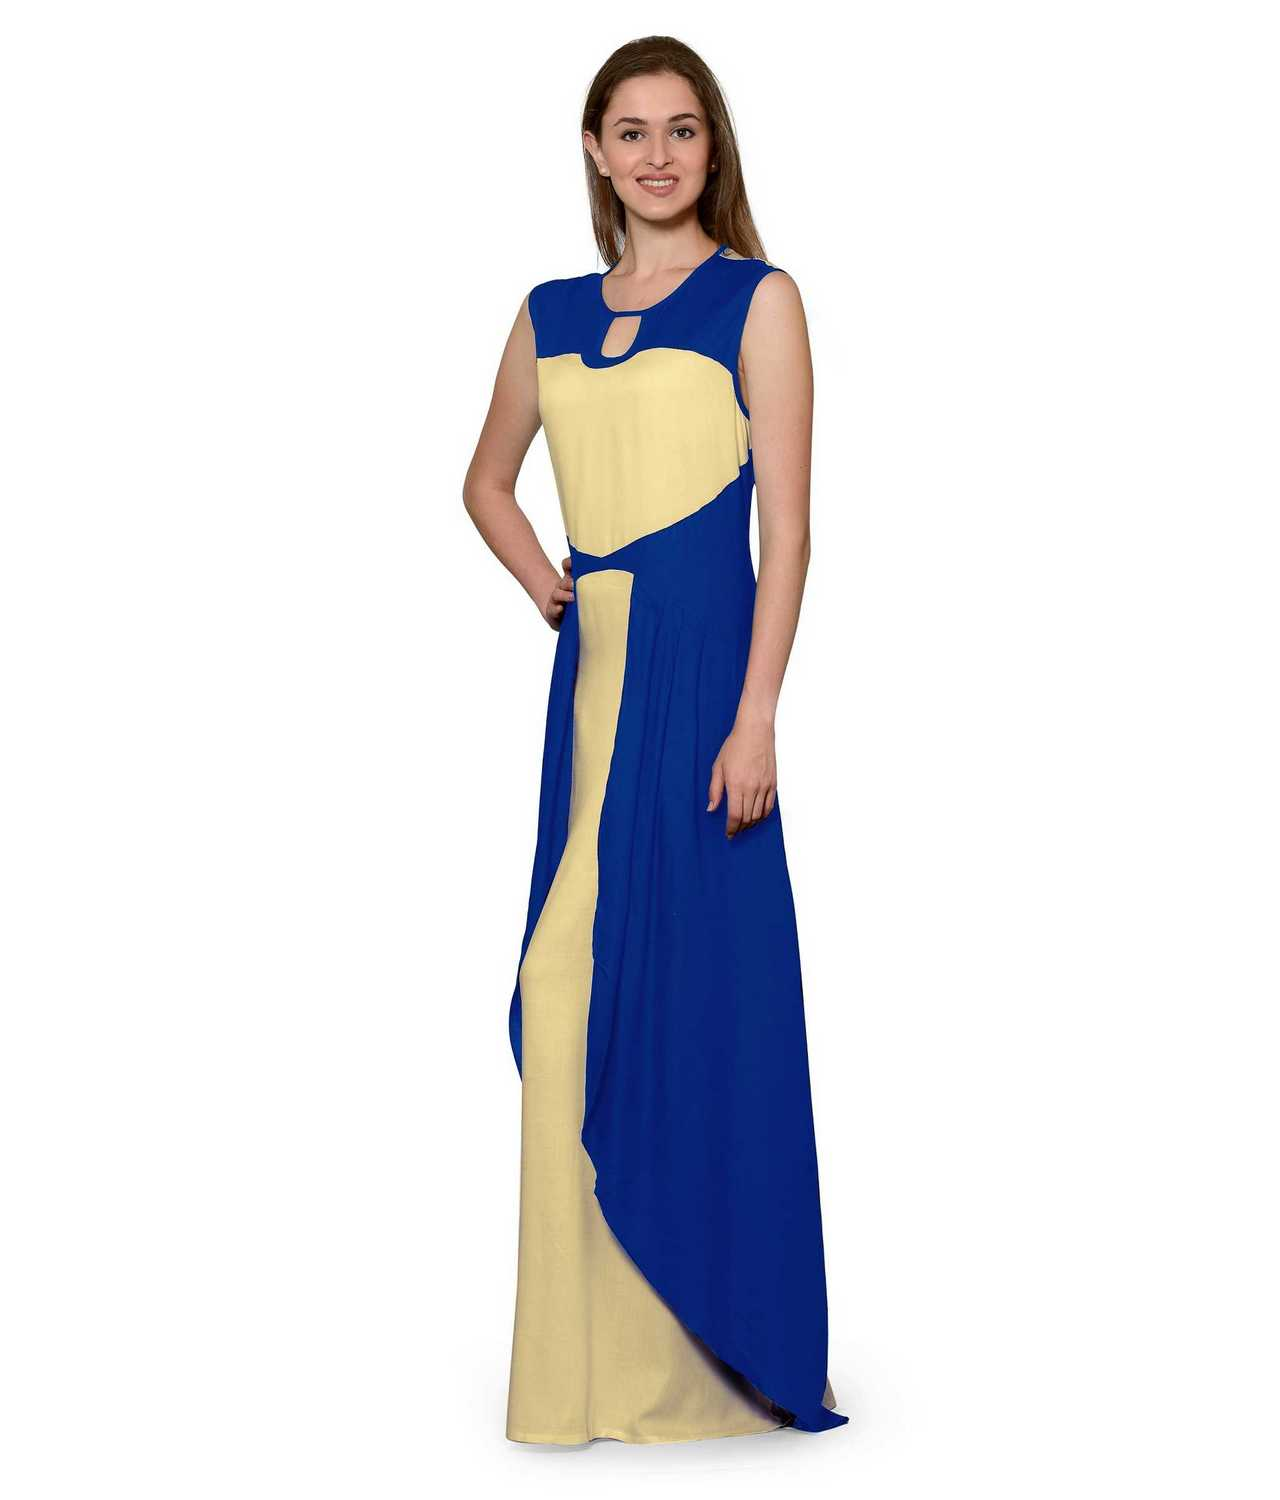 Color Block Maxi Dress or Gown  in Turquoise:Gold